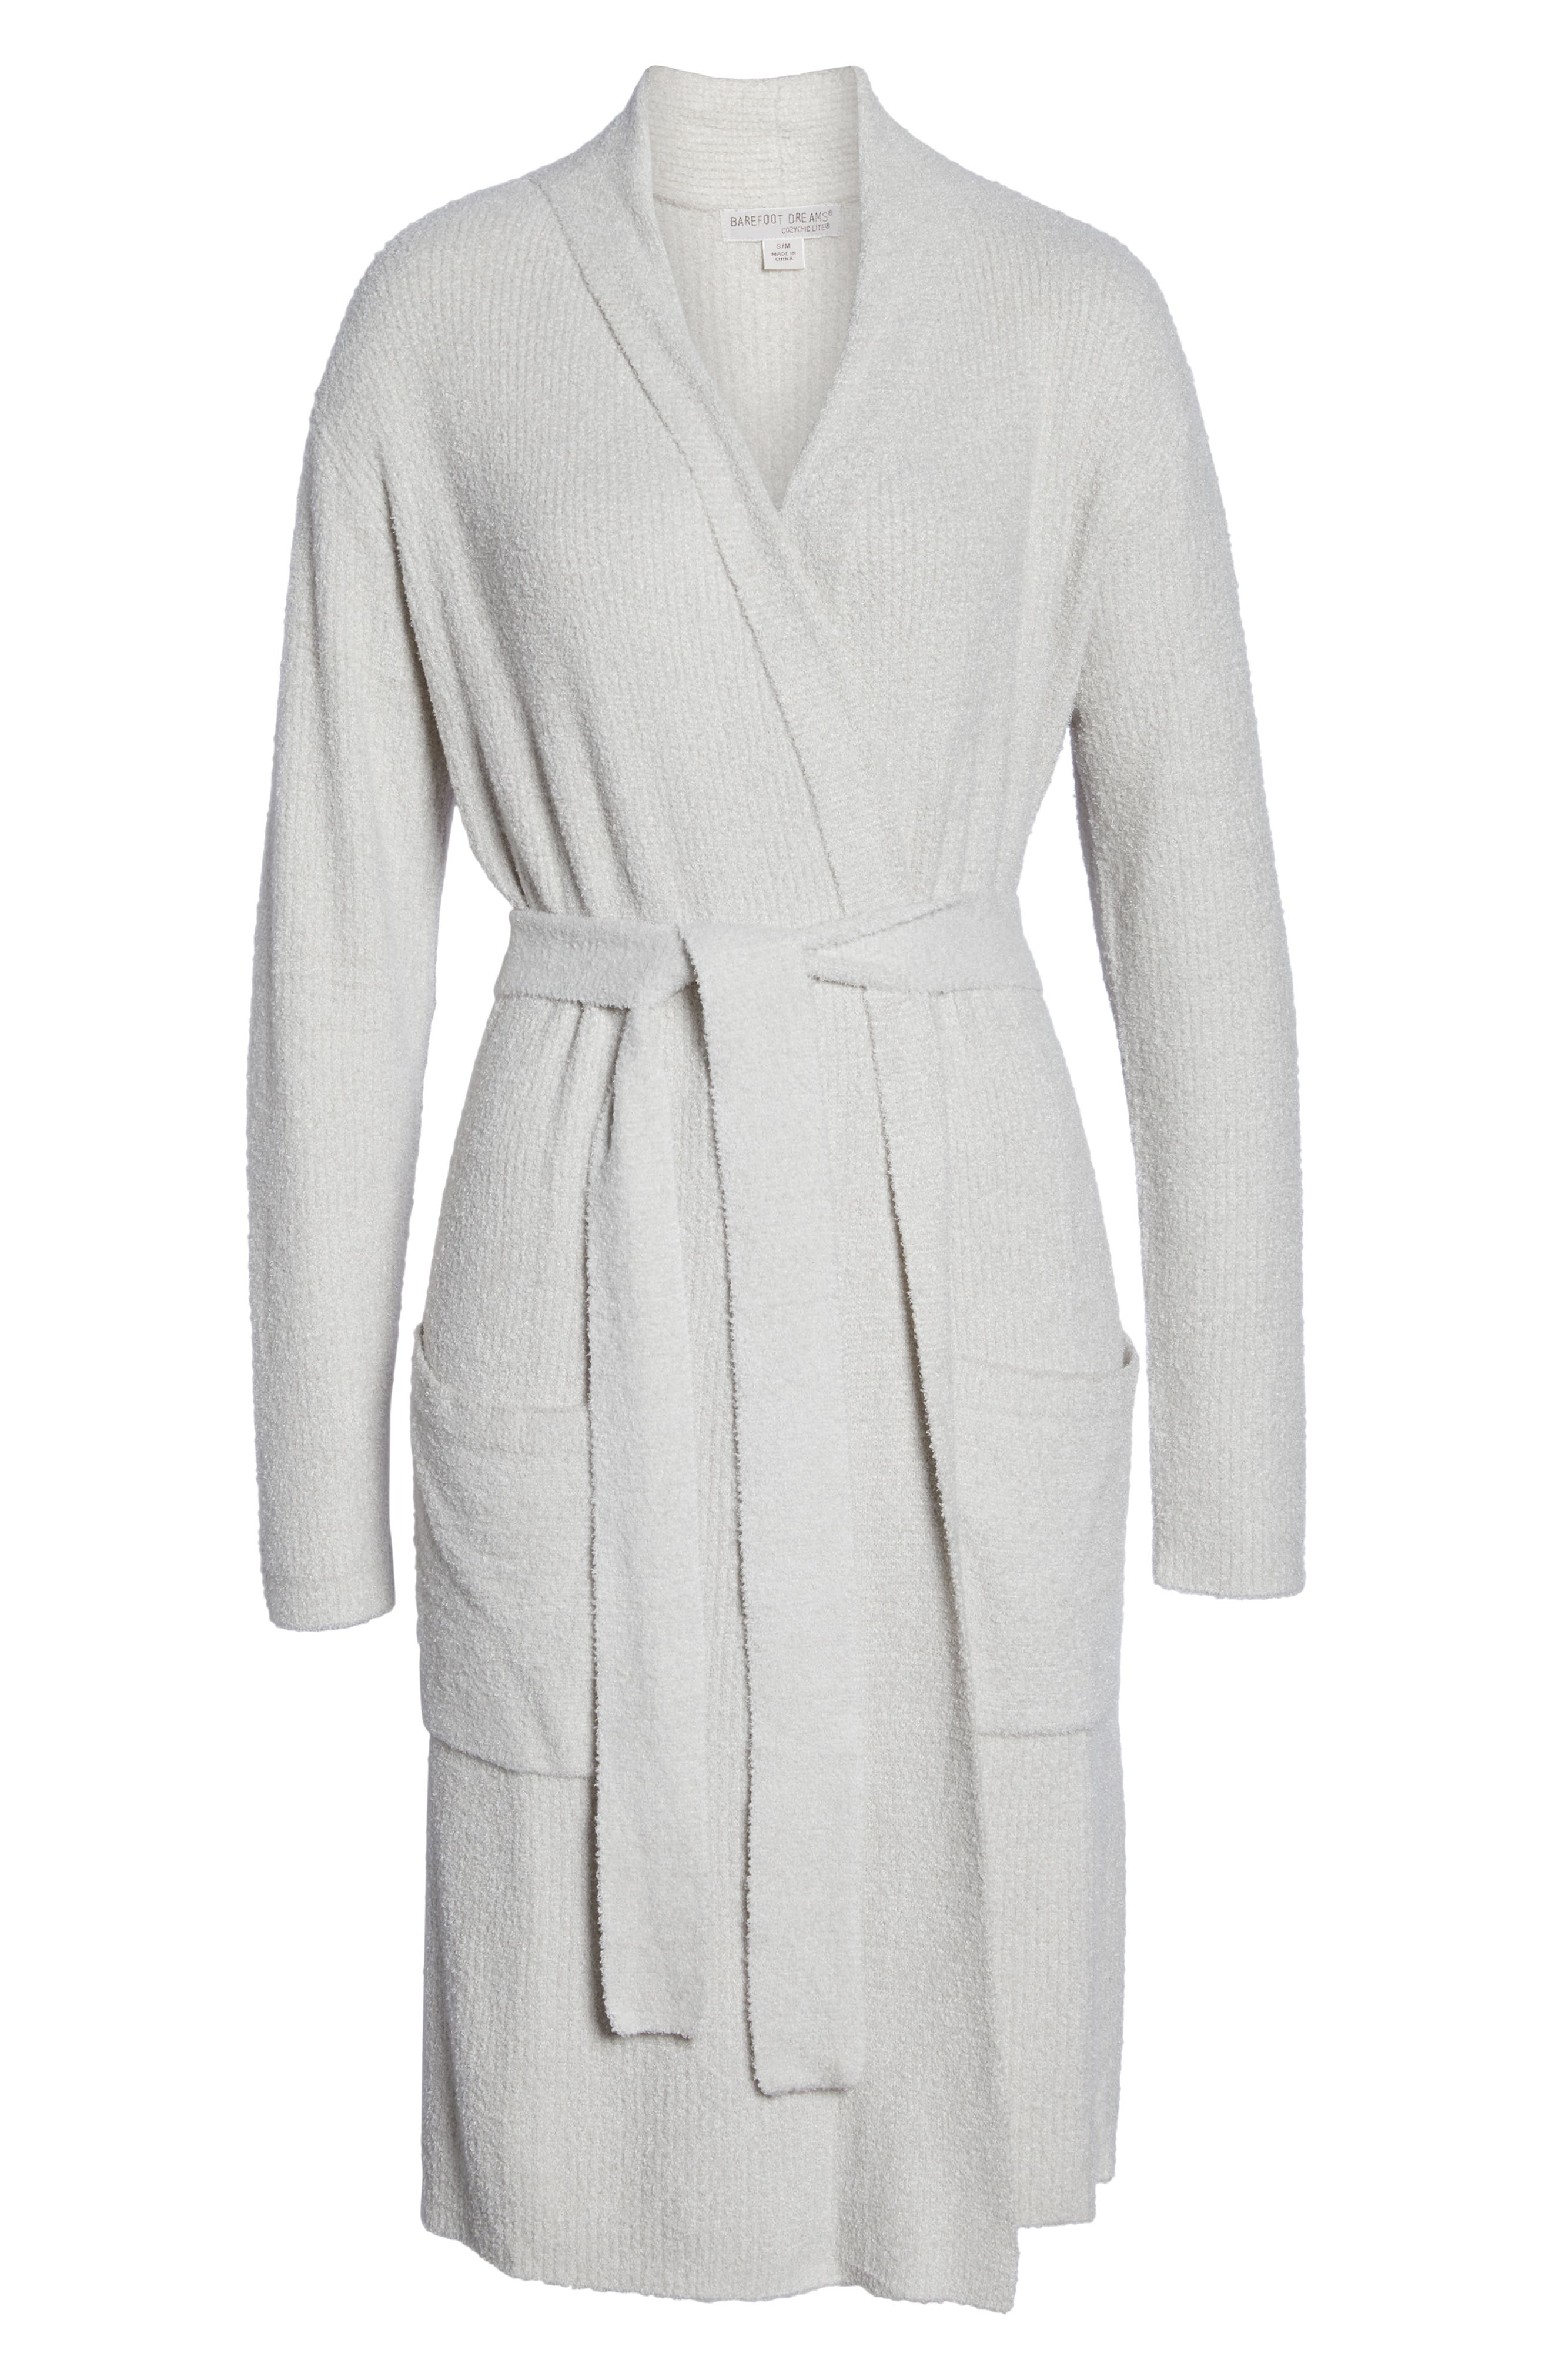 CozyChic<sup>™</sup> Ribbed Robe,                             Alternate thumbnail 6, color,                             SILVER/ PEARL- HE